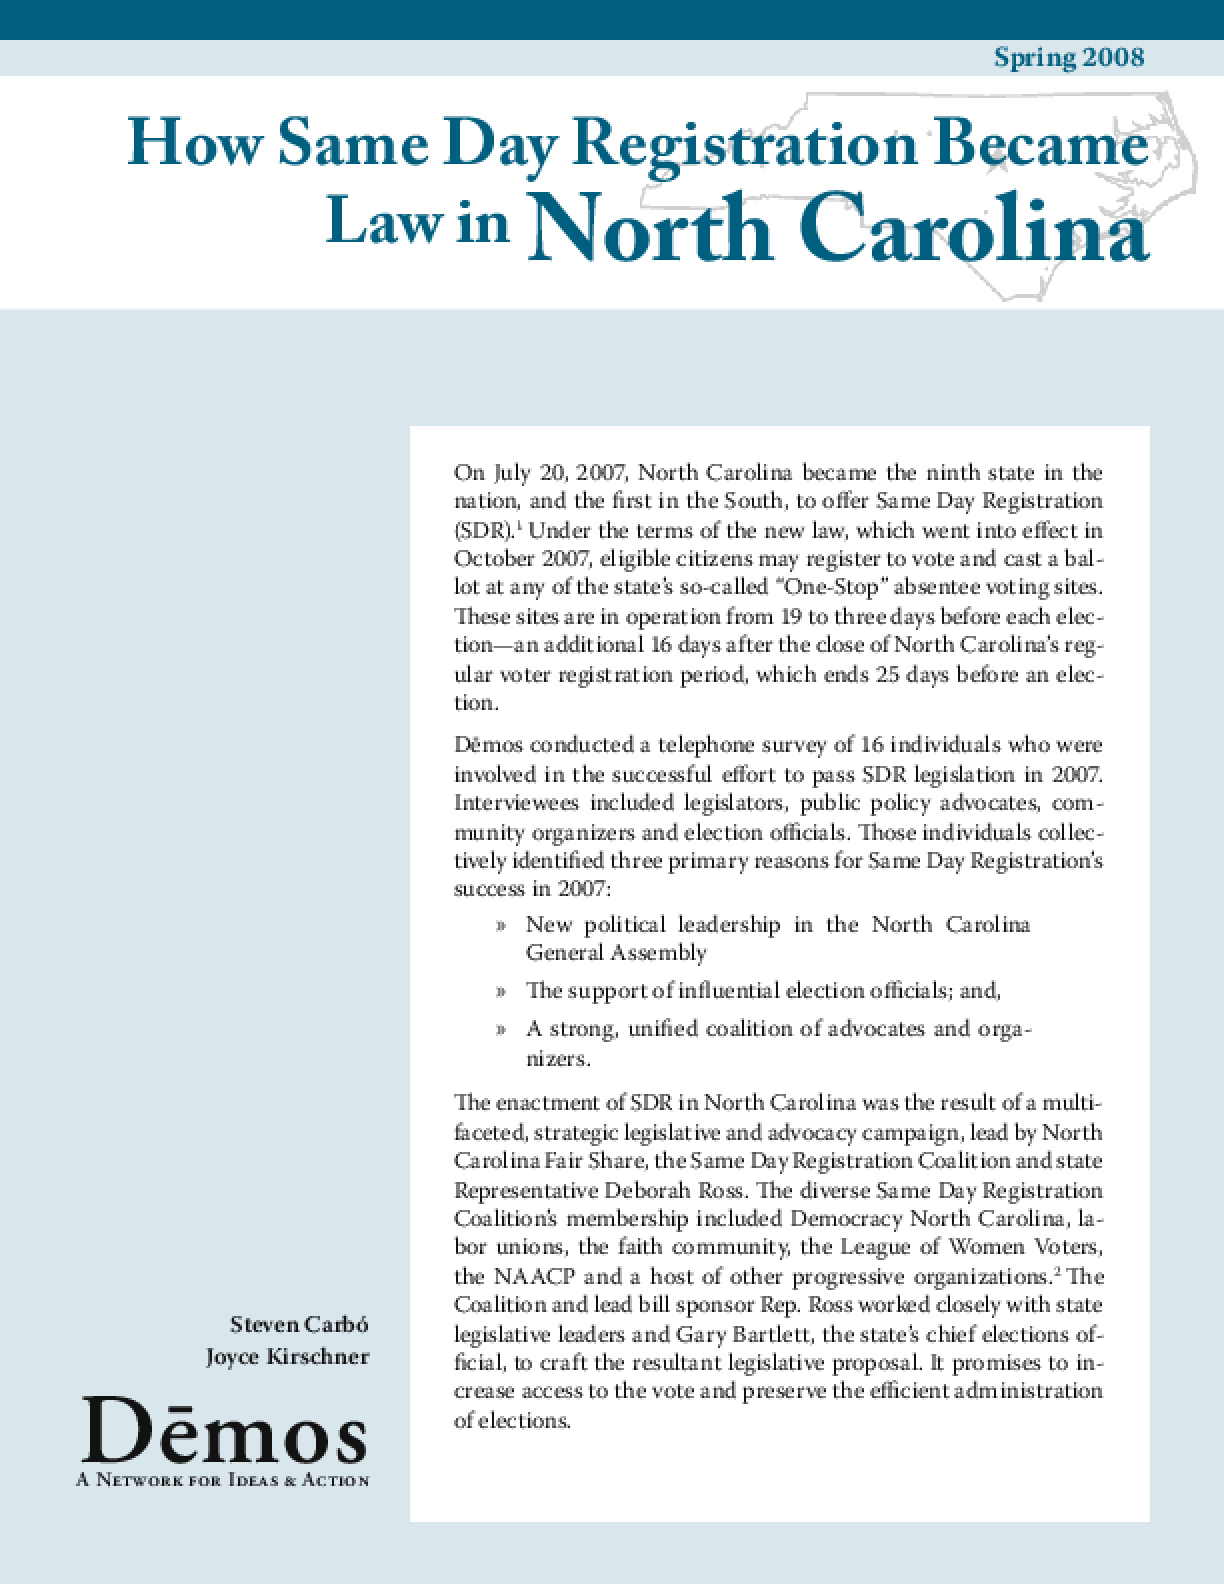 How Same Day Registration Became Law in North Carolina